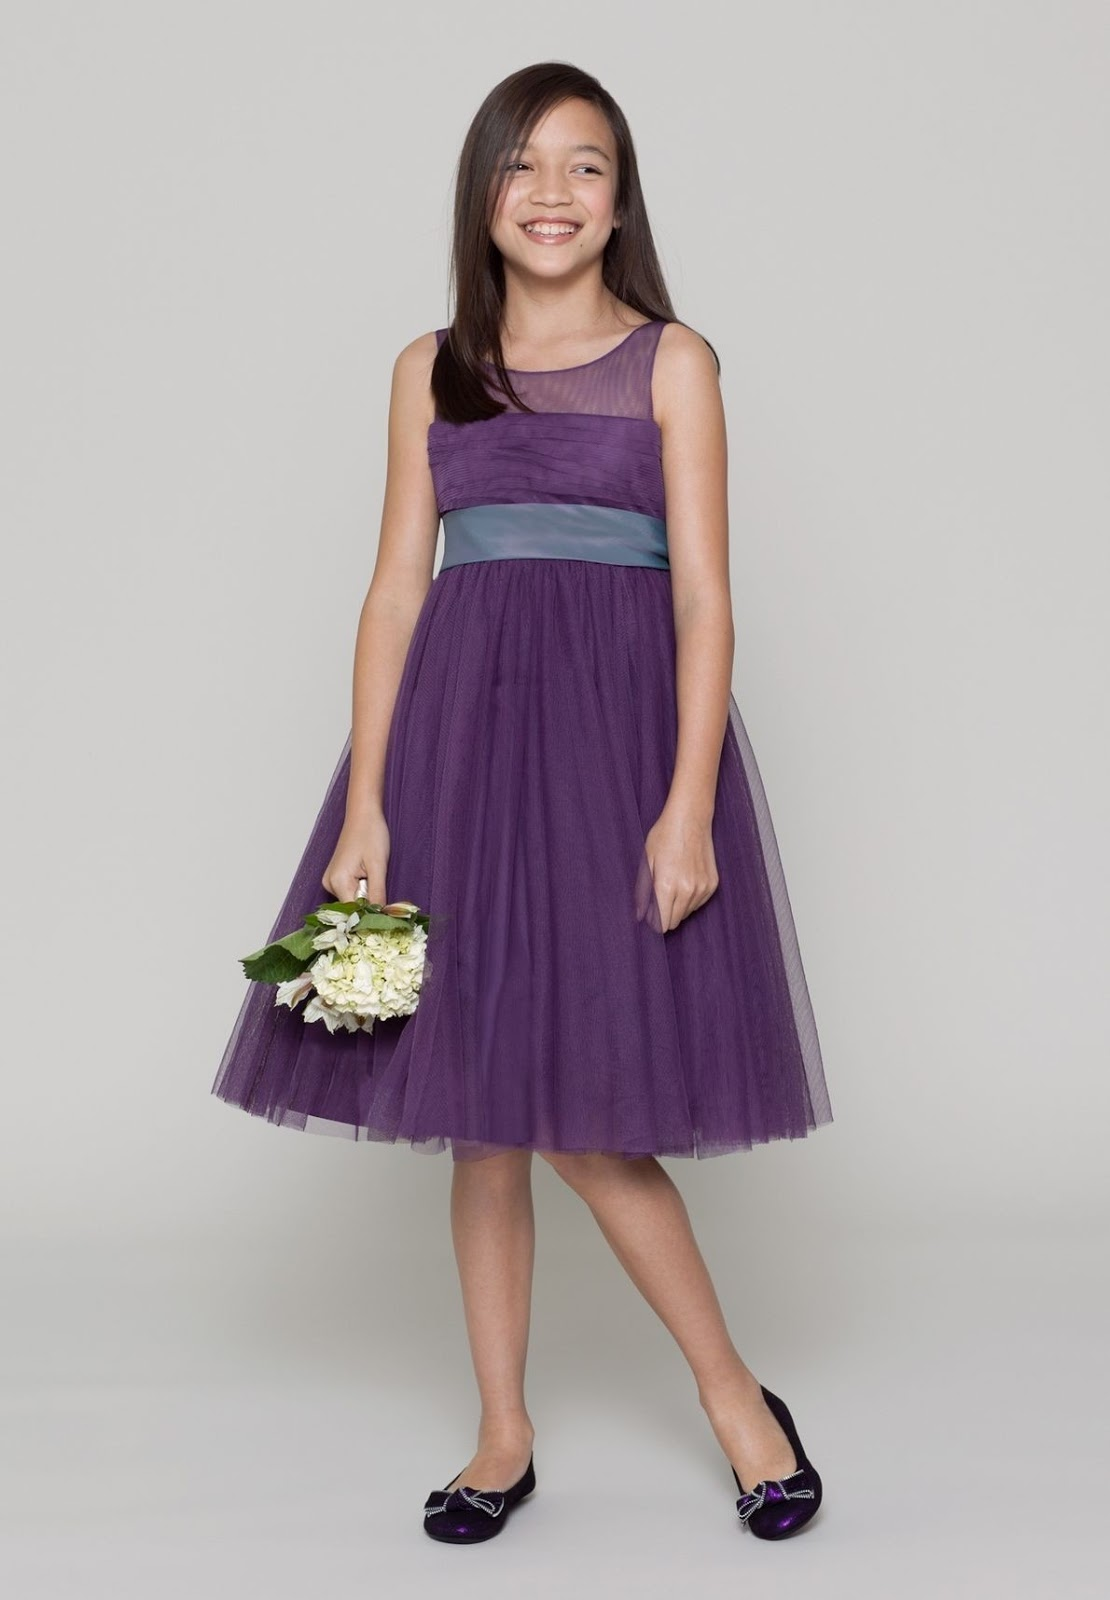 whiteazalea junior dresses new arrivals junior With junior dresses for wedding